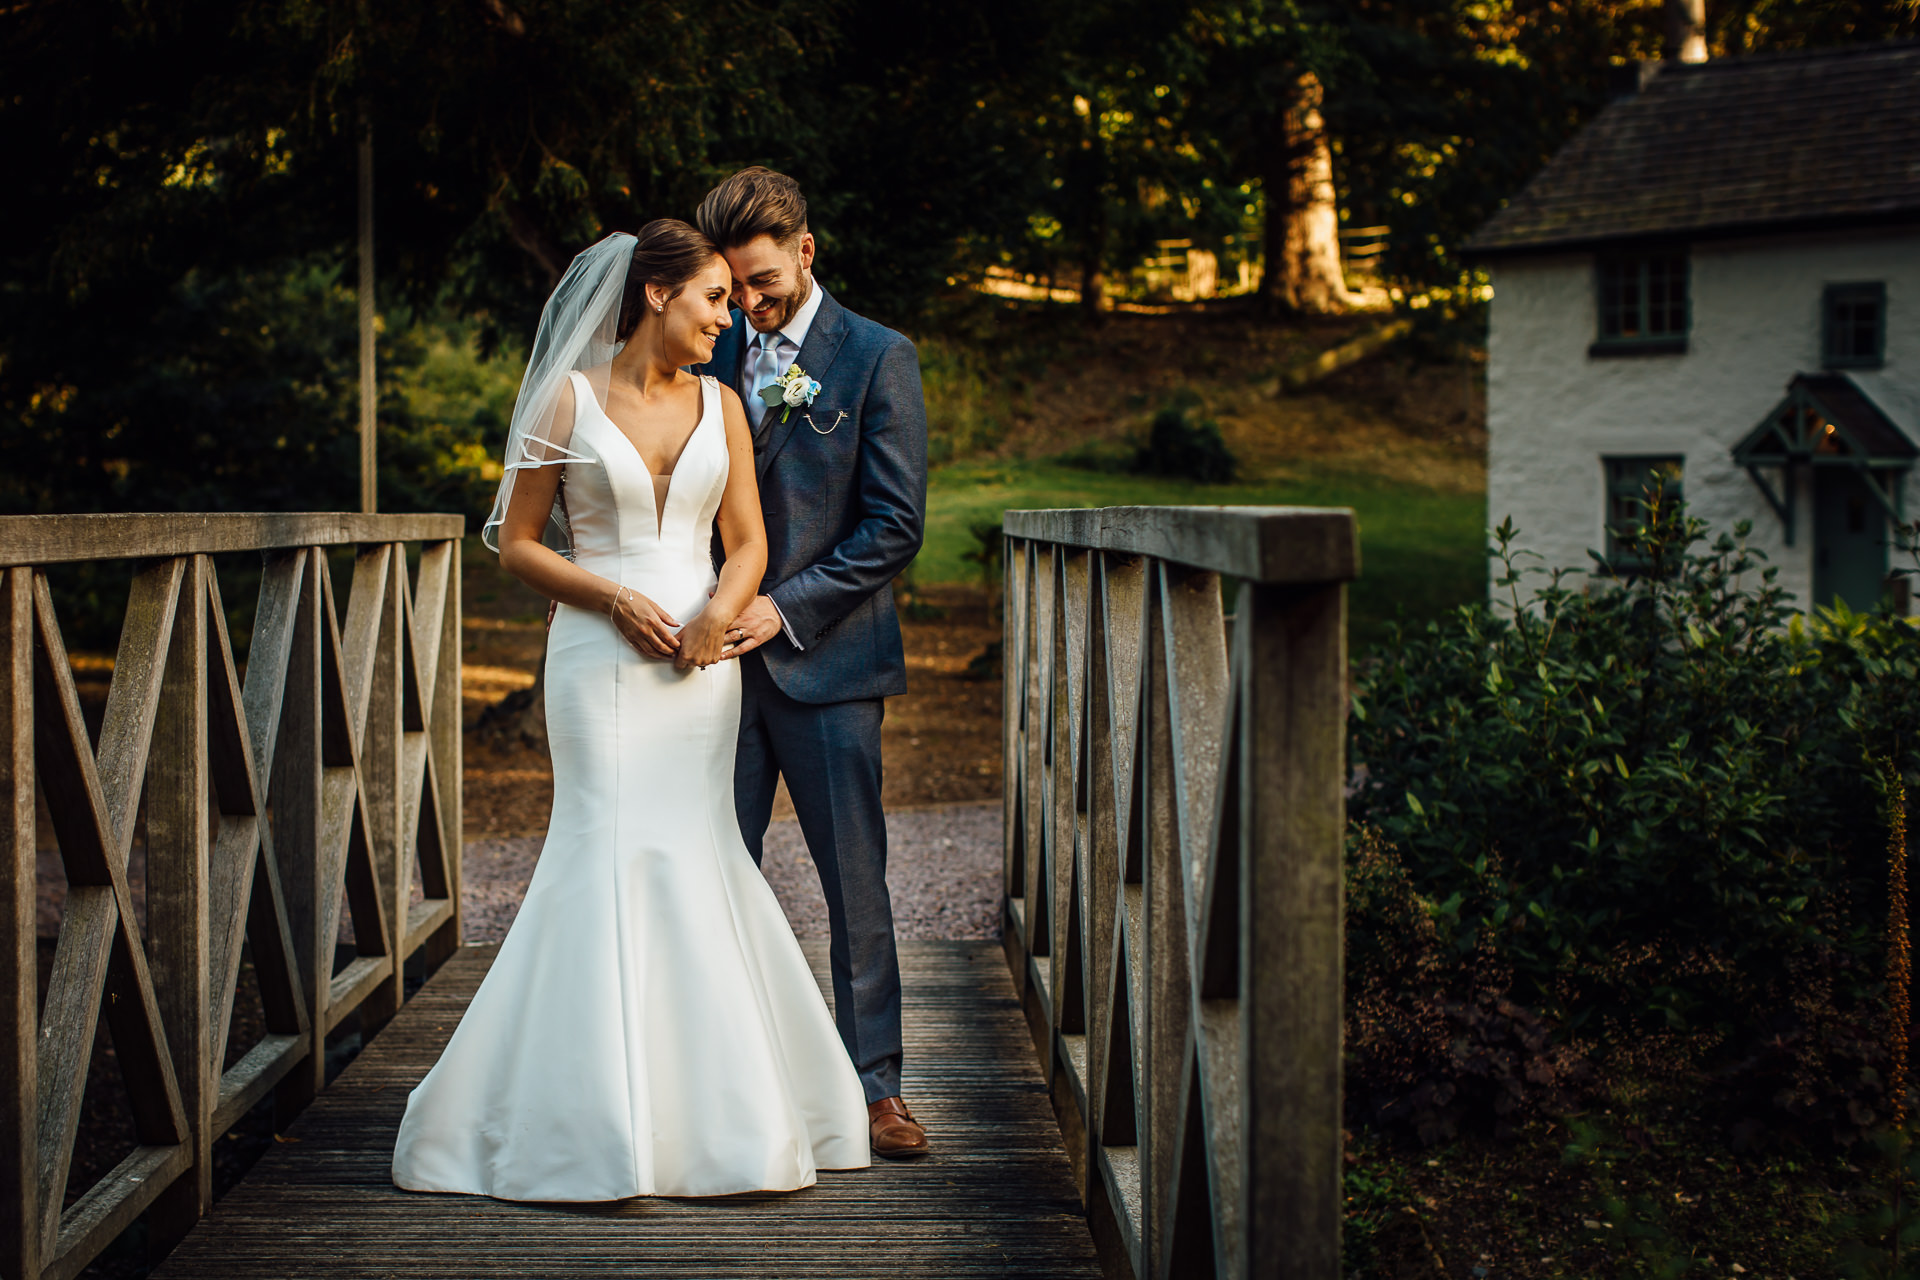 WEDDING PHOTOGRAPHY TYN DWR